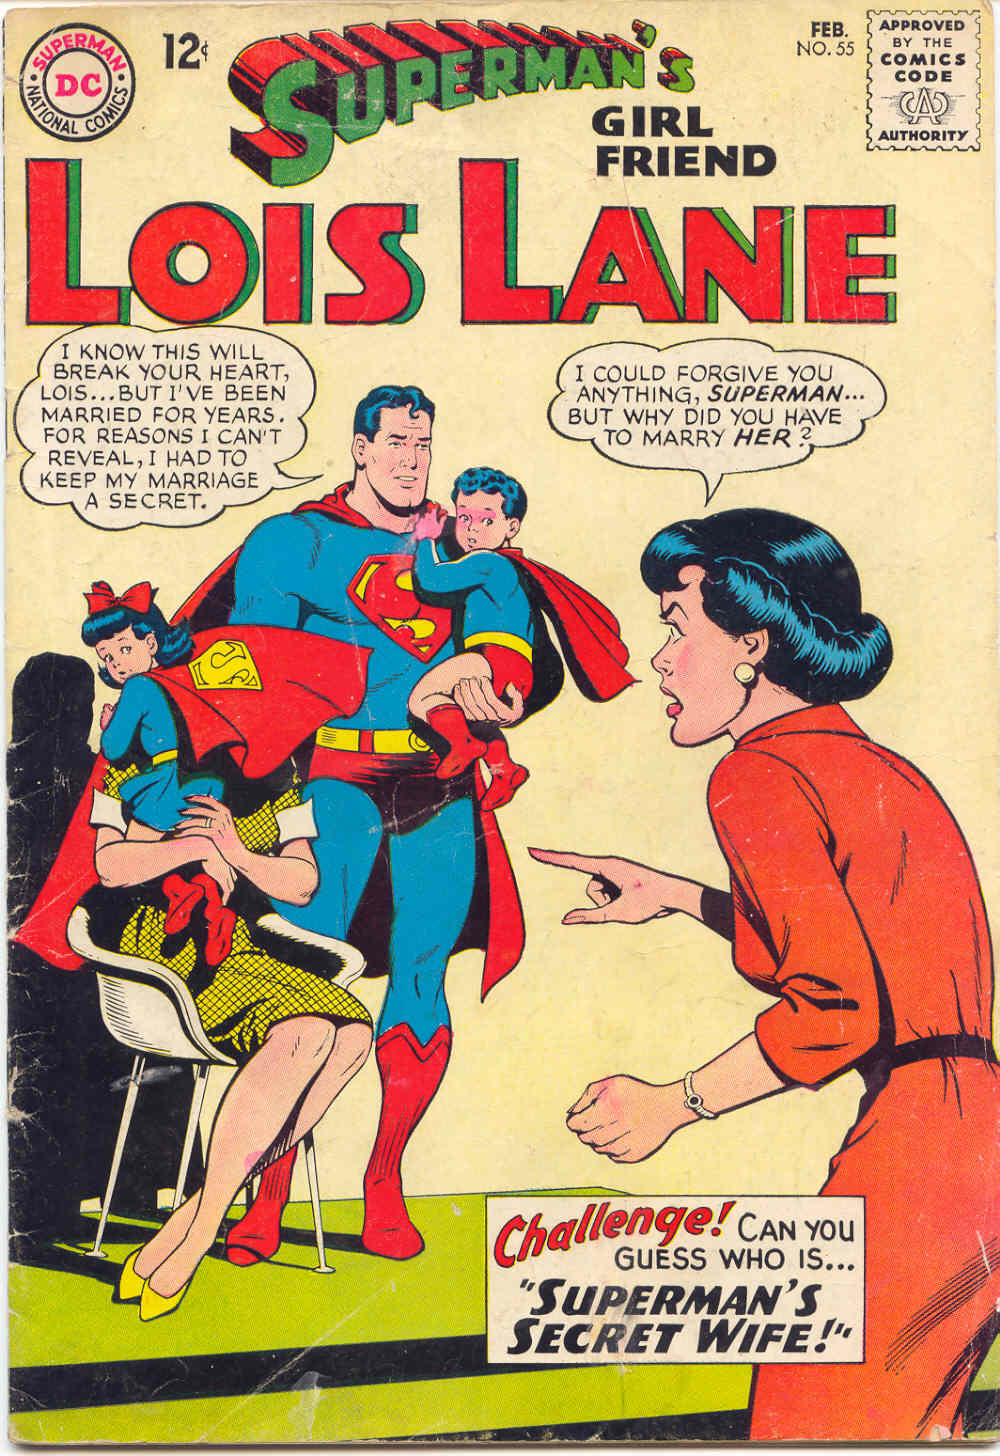 image supermans girlfriend lois lane jpg superman wiki file supermans girlfriend lois lane 055 jpg